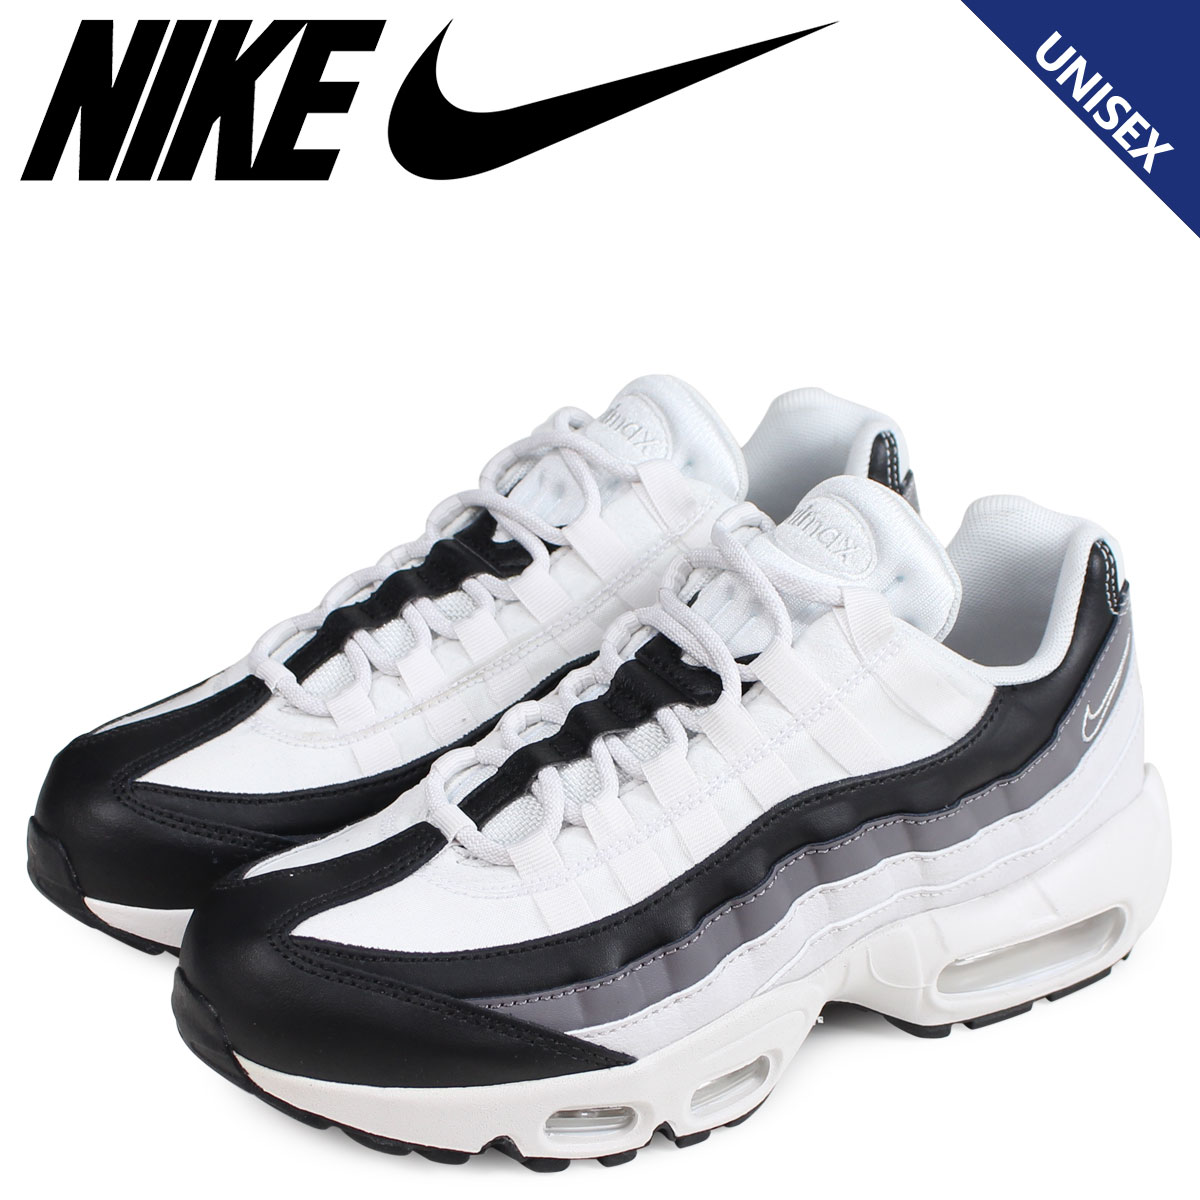 Nike NIKE Air Max 95 sneakers men gap Dis WMNS AIR MAX 95 white white 307,960 021